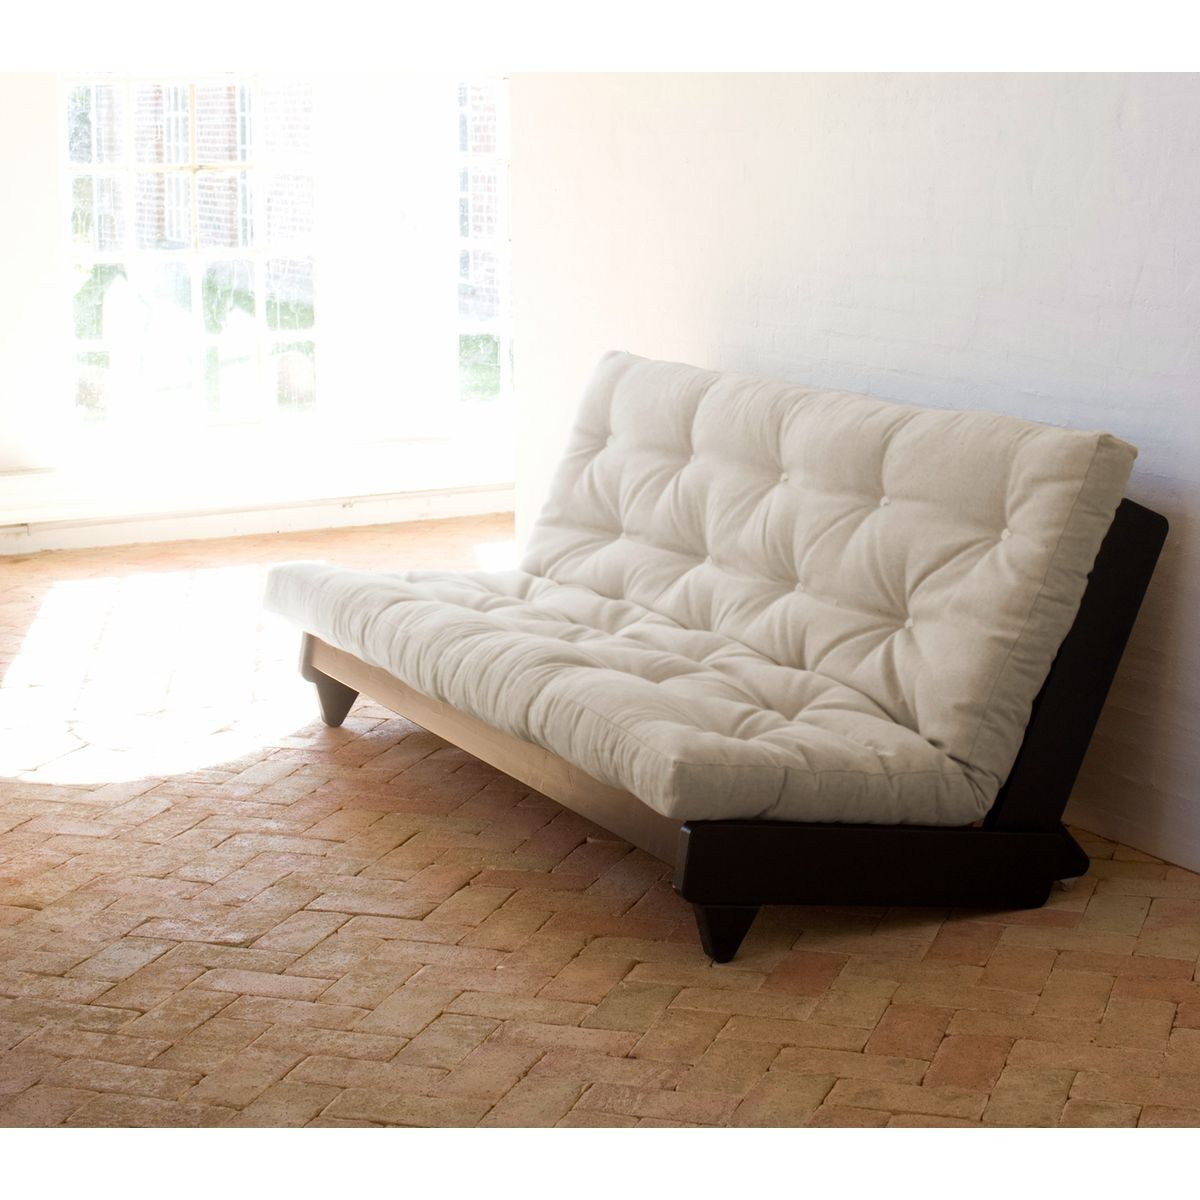 Futon On Sale Futon Bench In Wenge Fresh Wood Size 140x200 Cm